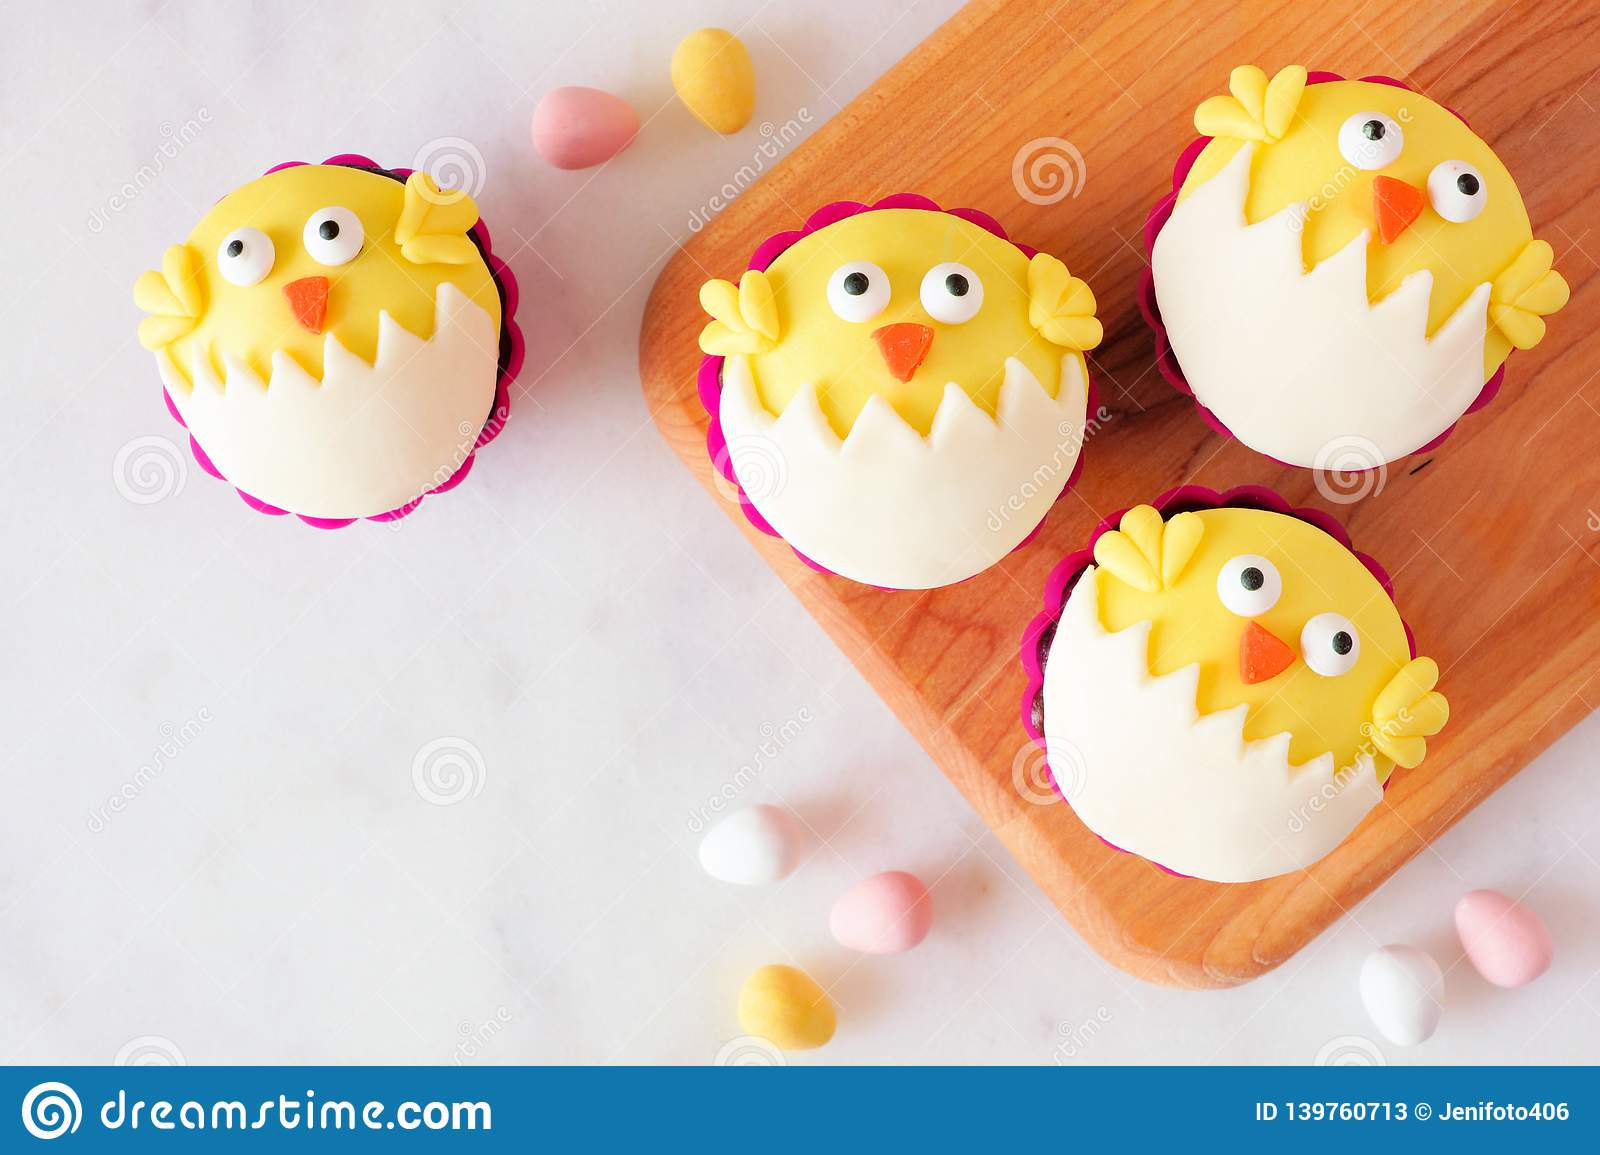 Hatching Spring Chick Cupcakes On A Wood Platter, Top View